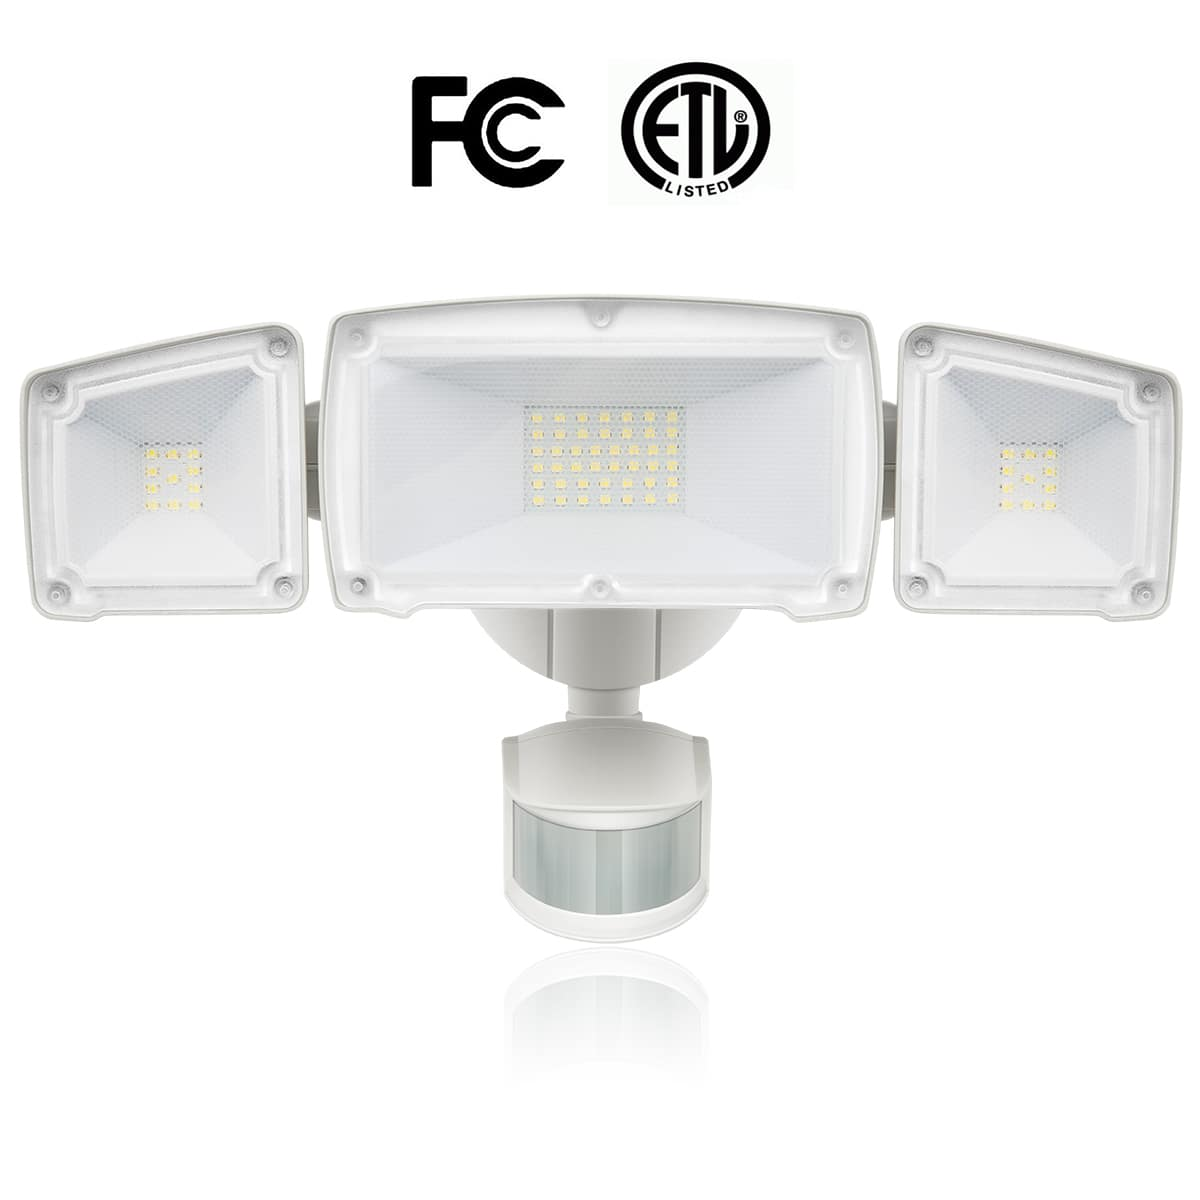 LED Security Light, 39W (200W Equivalent) Outdoor Motion Sensor Light, 3000lm, 5000K Daylight White, Waterproof IP65, ETL, 3 Adjustable Heads, 120v $38.39